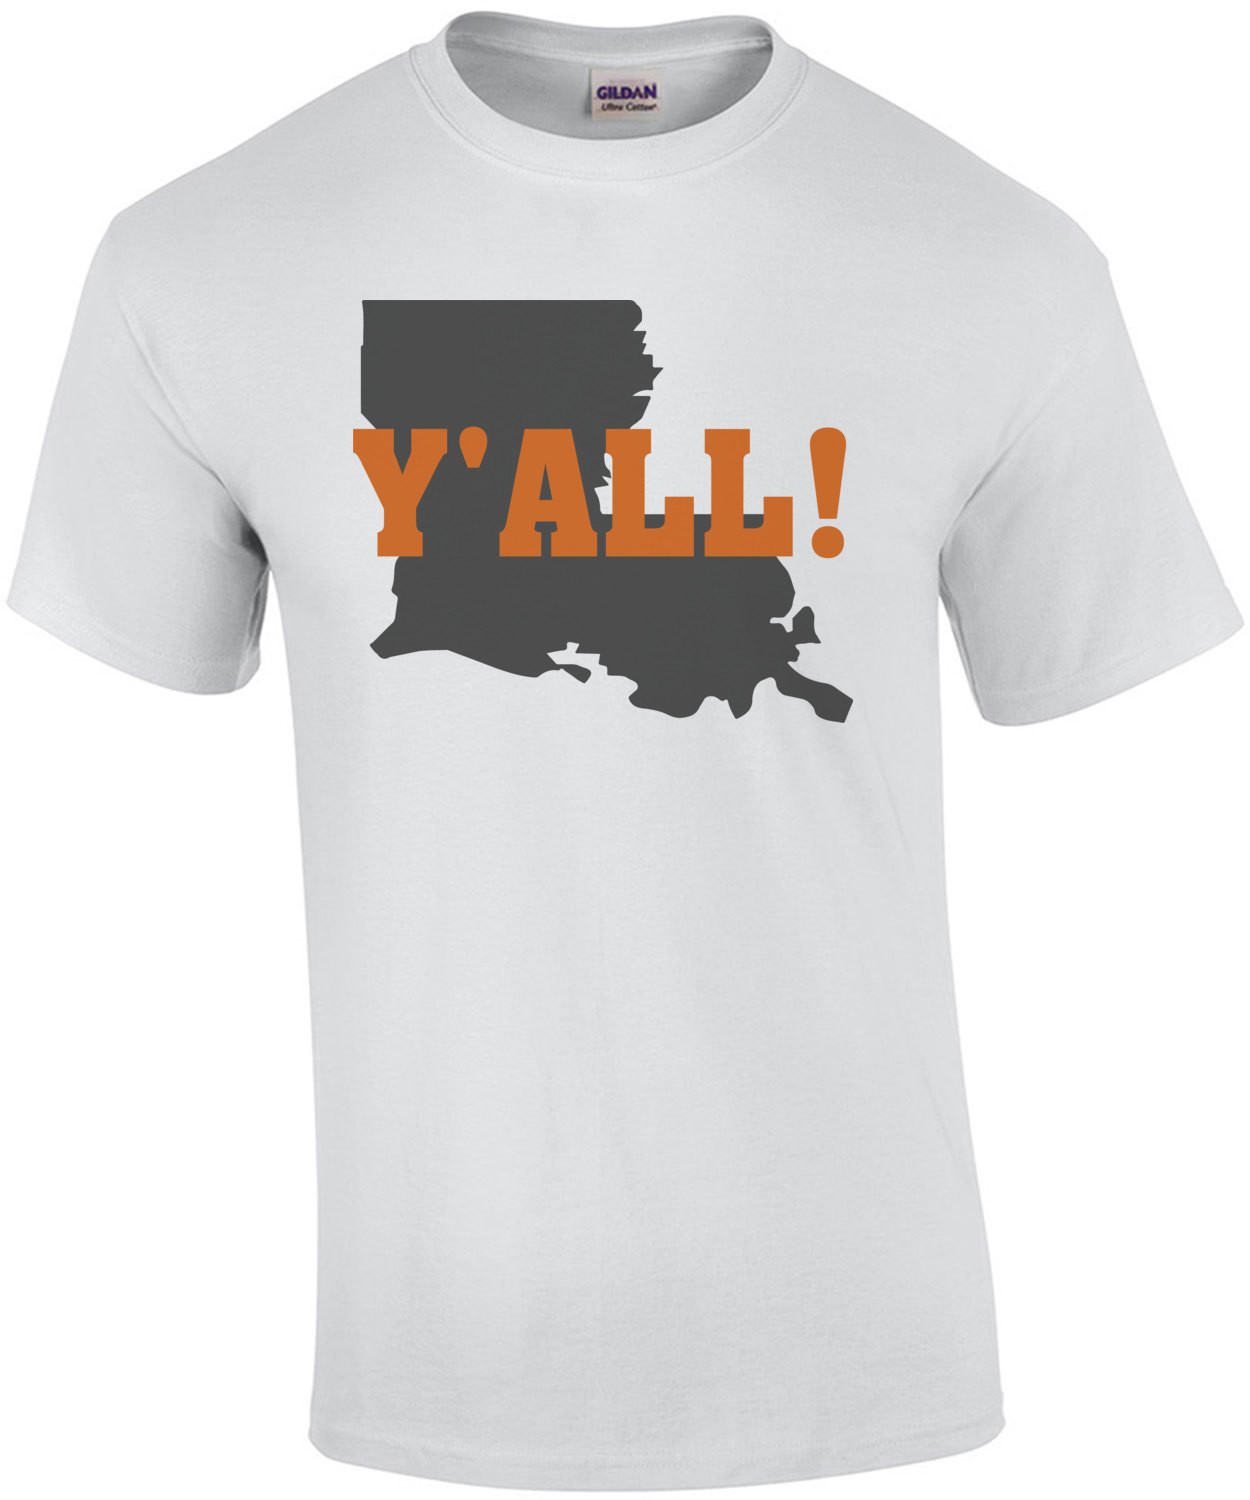 Y'all! Louisiana T-Shirt